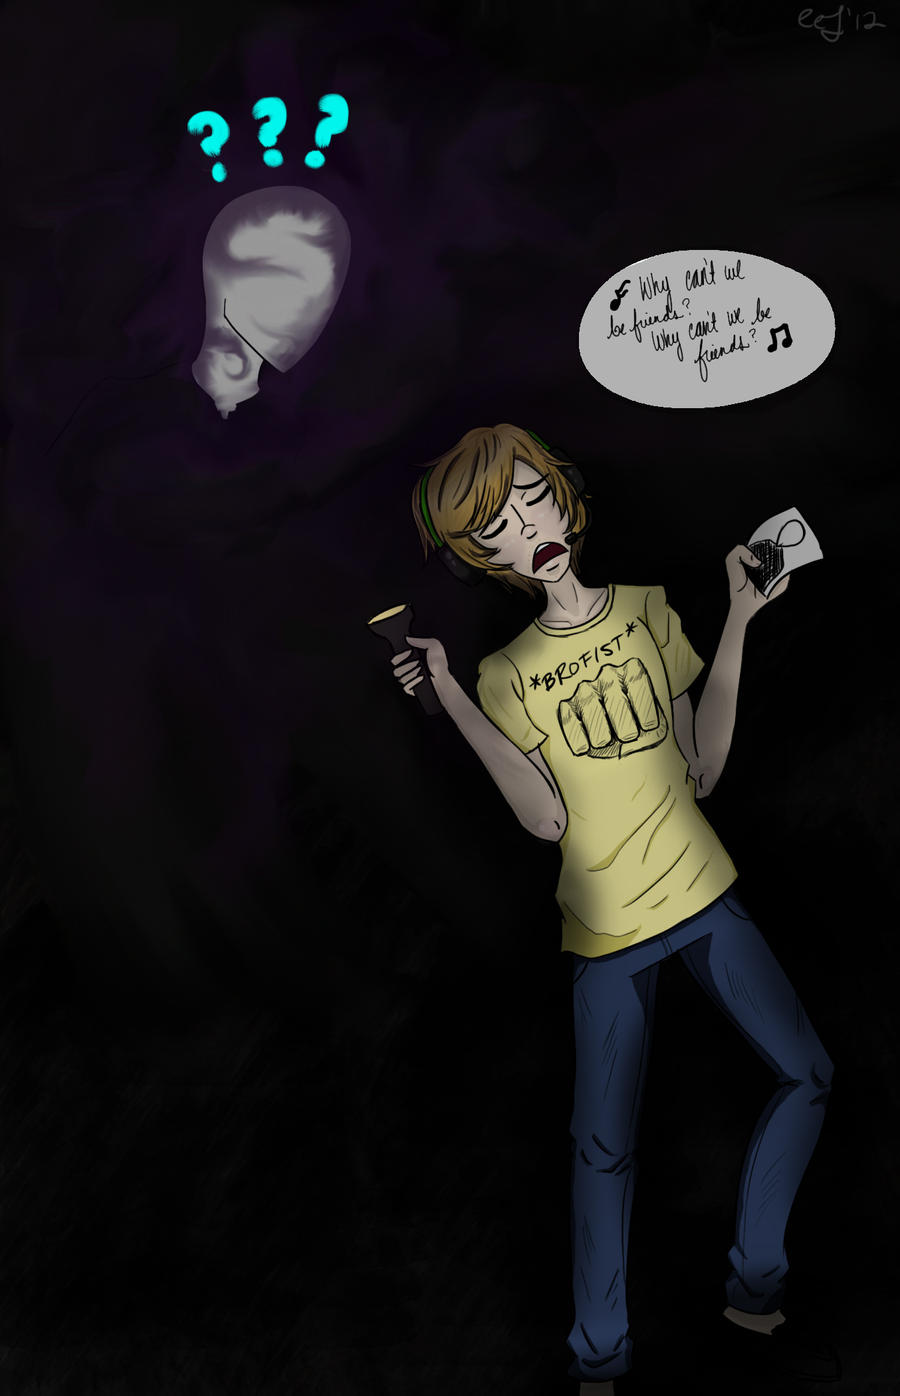 PEWDIEPIE AND SLENDERMAN by BunnyRinX3 on DeviantArt